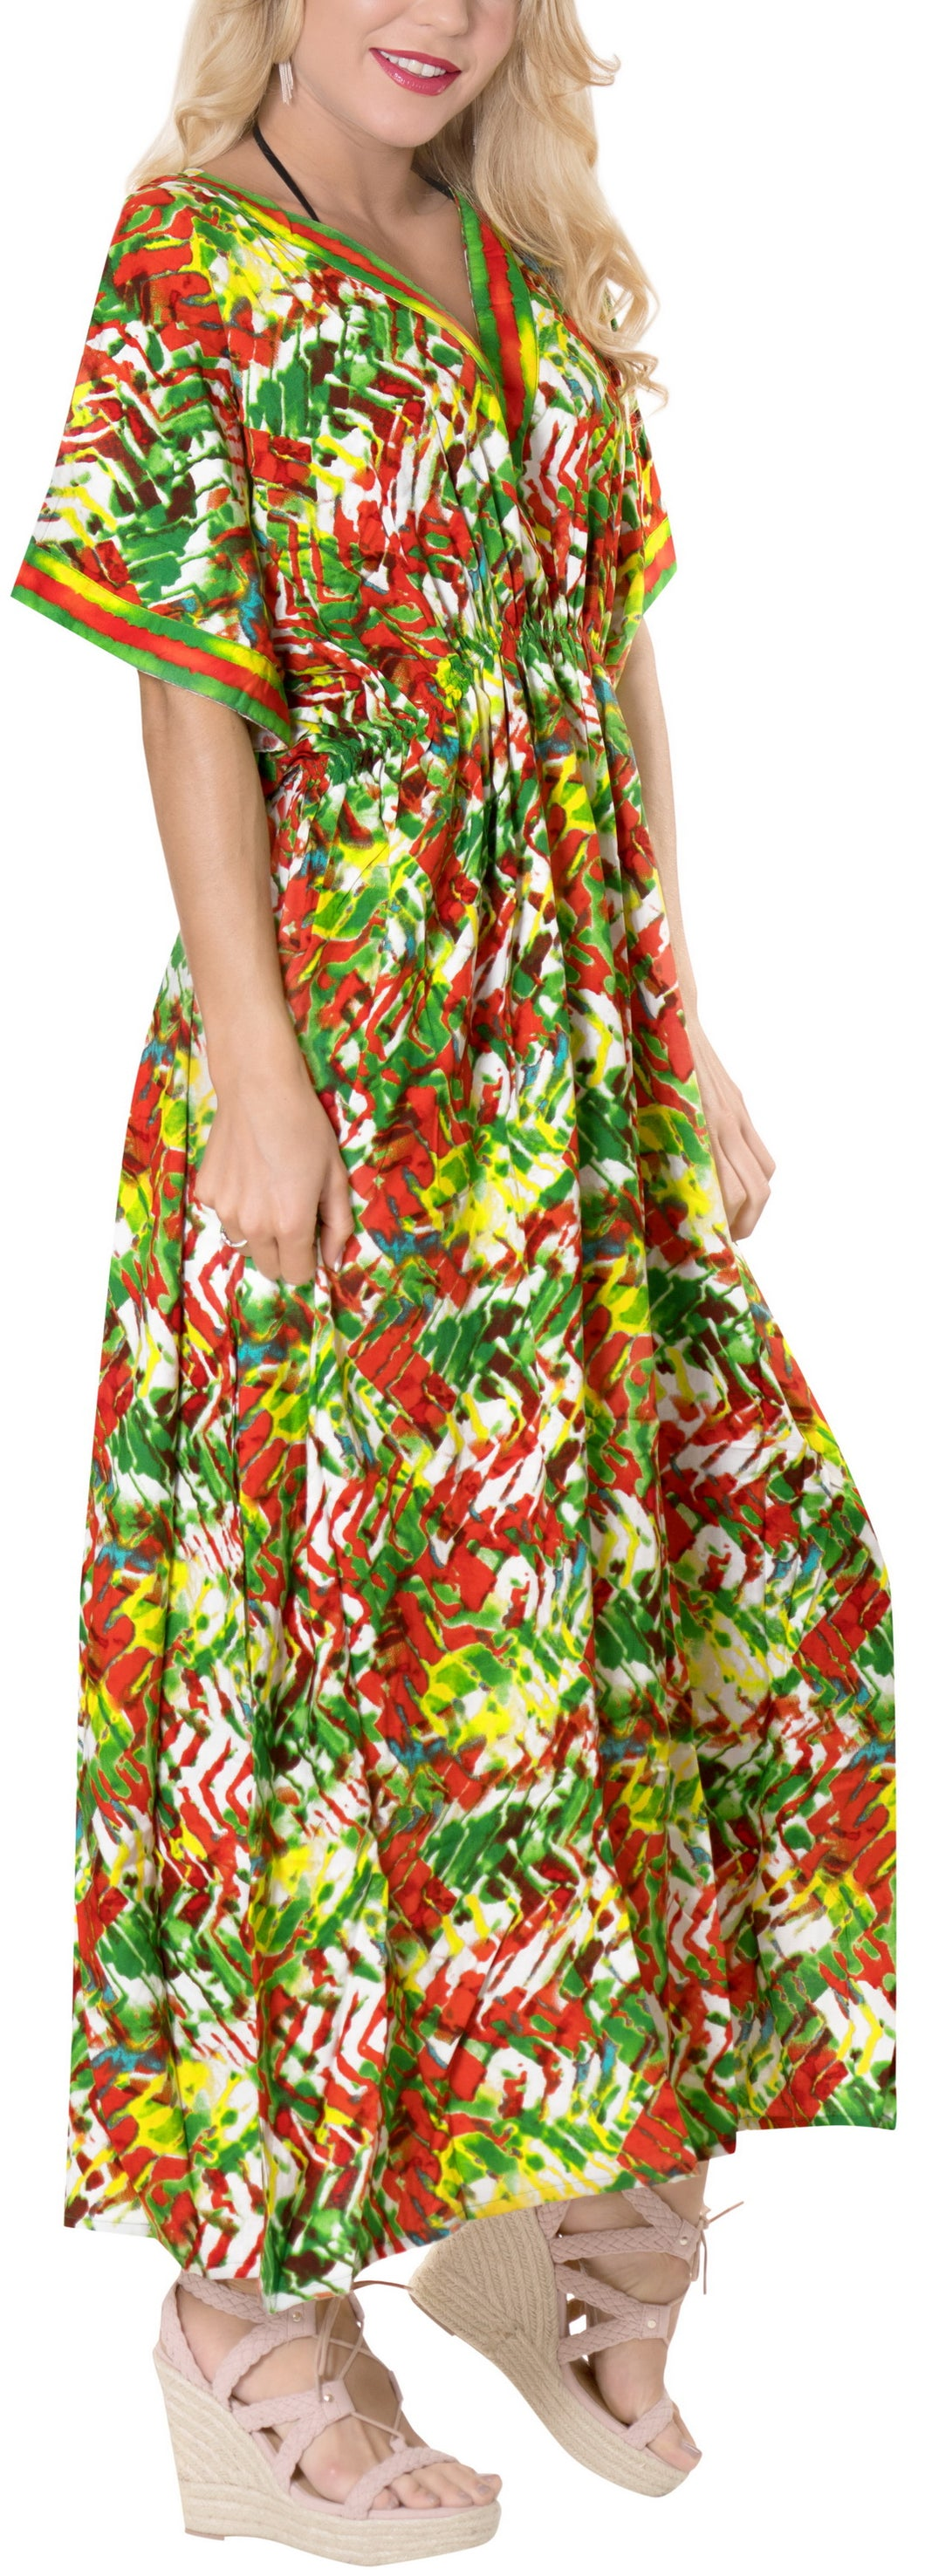 la-leela-lounge-rayon-printed-long-caftan-swimwear-dress-green_564-osfm-10-16w-m-1x